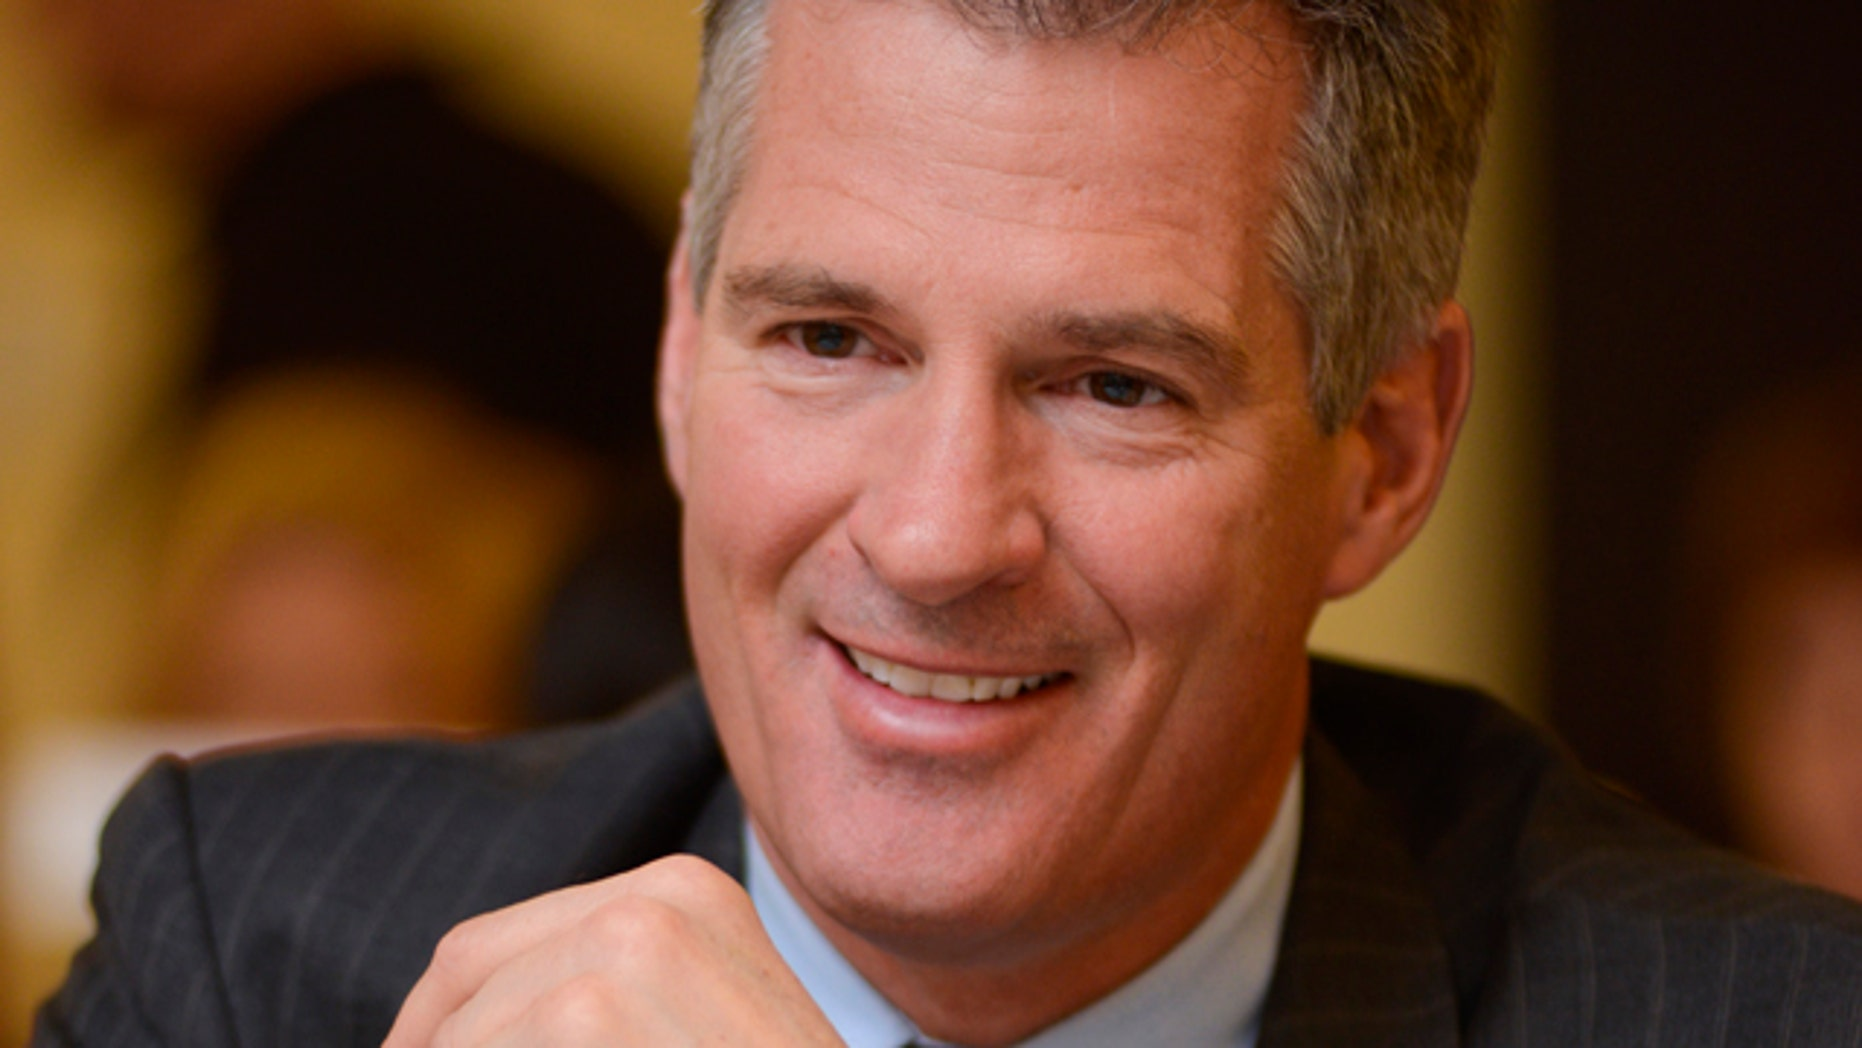 """April 4, 2013: Former U.S. Sen. Scott Brown of Massachusetts sits at a table during the 11th Annual """"Keeping the Dream Alive"""" dinner commemorating the anniversary of Martin Luther King Jr.'s death."""